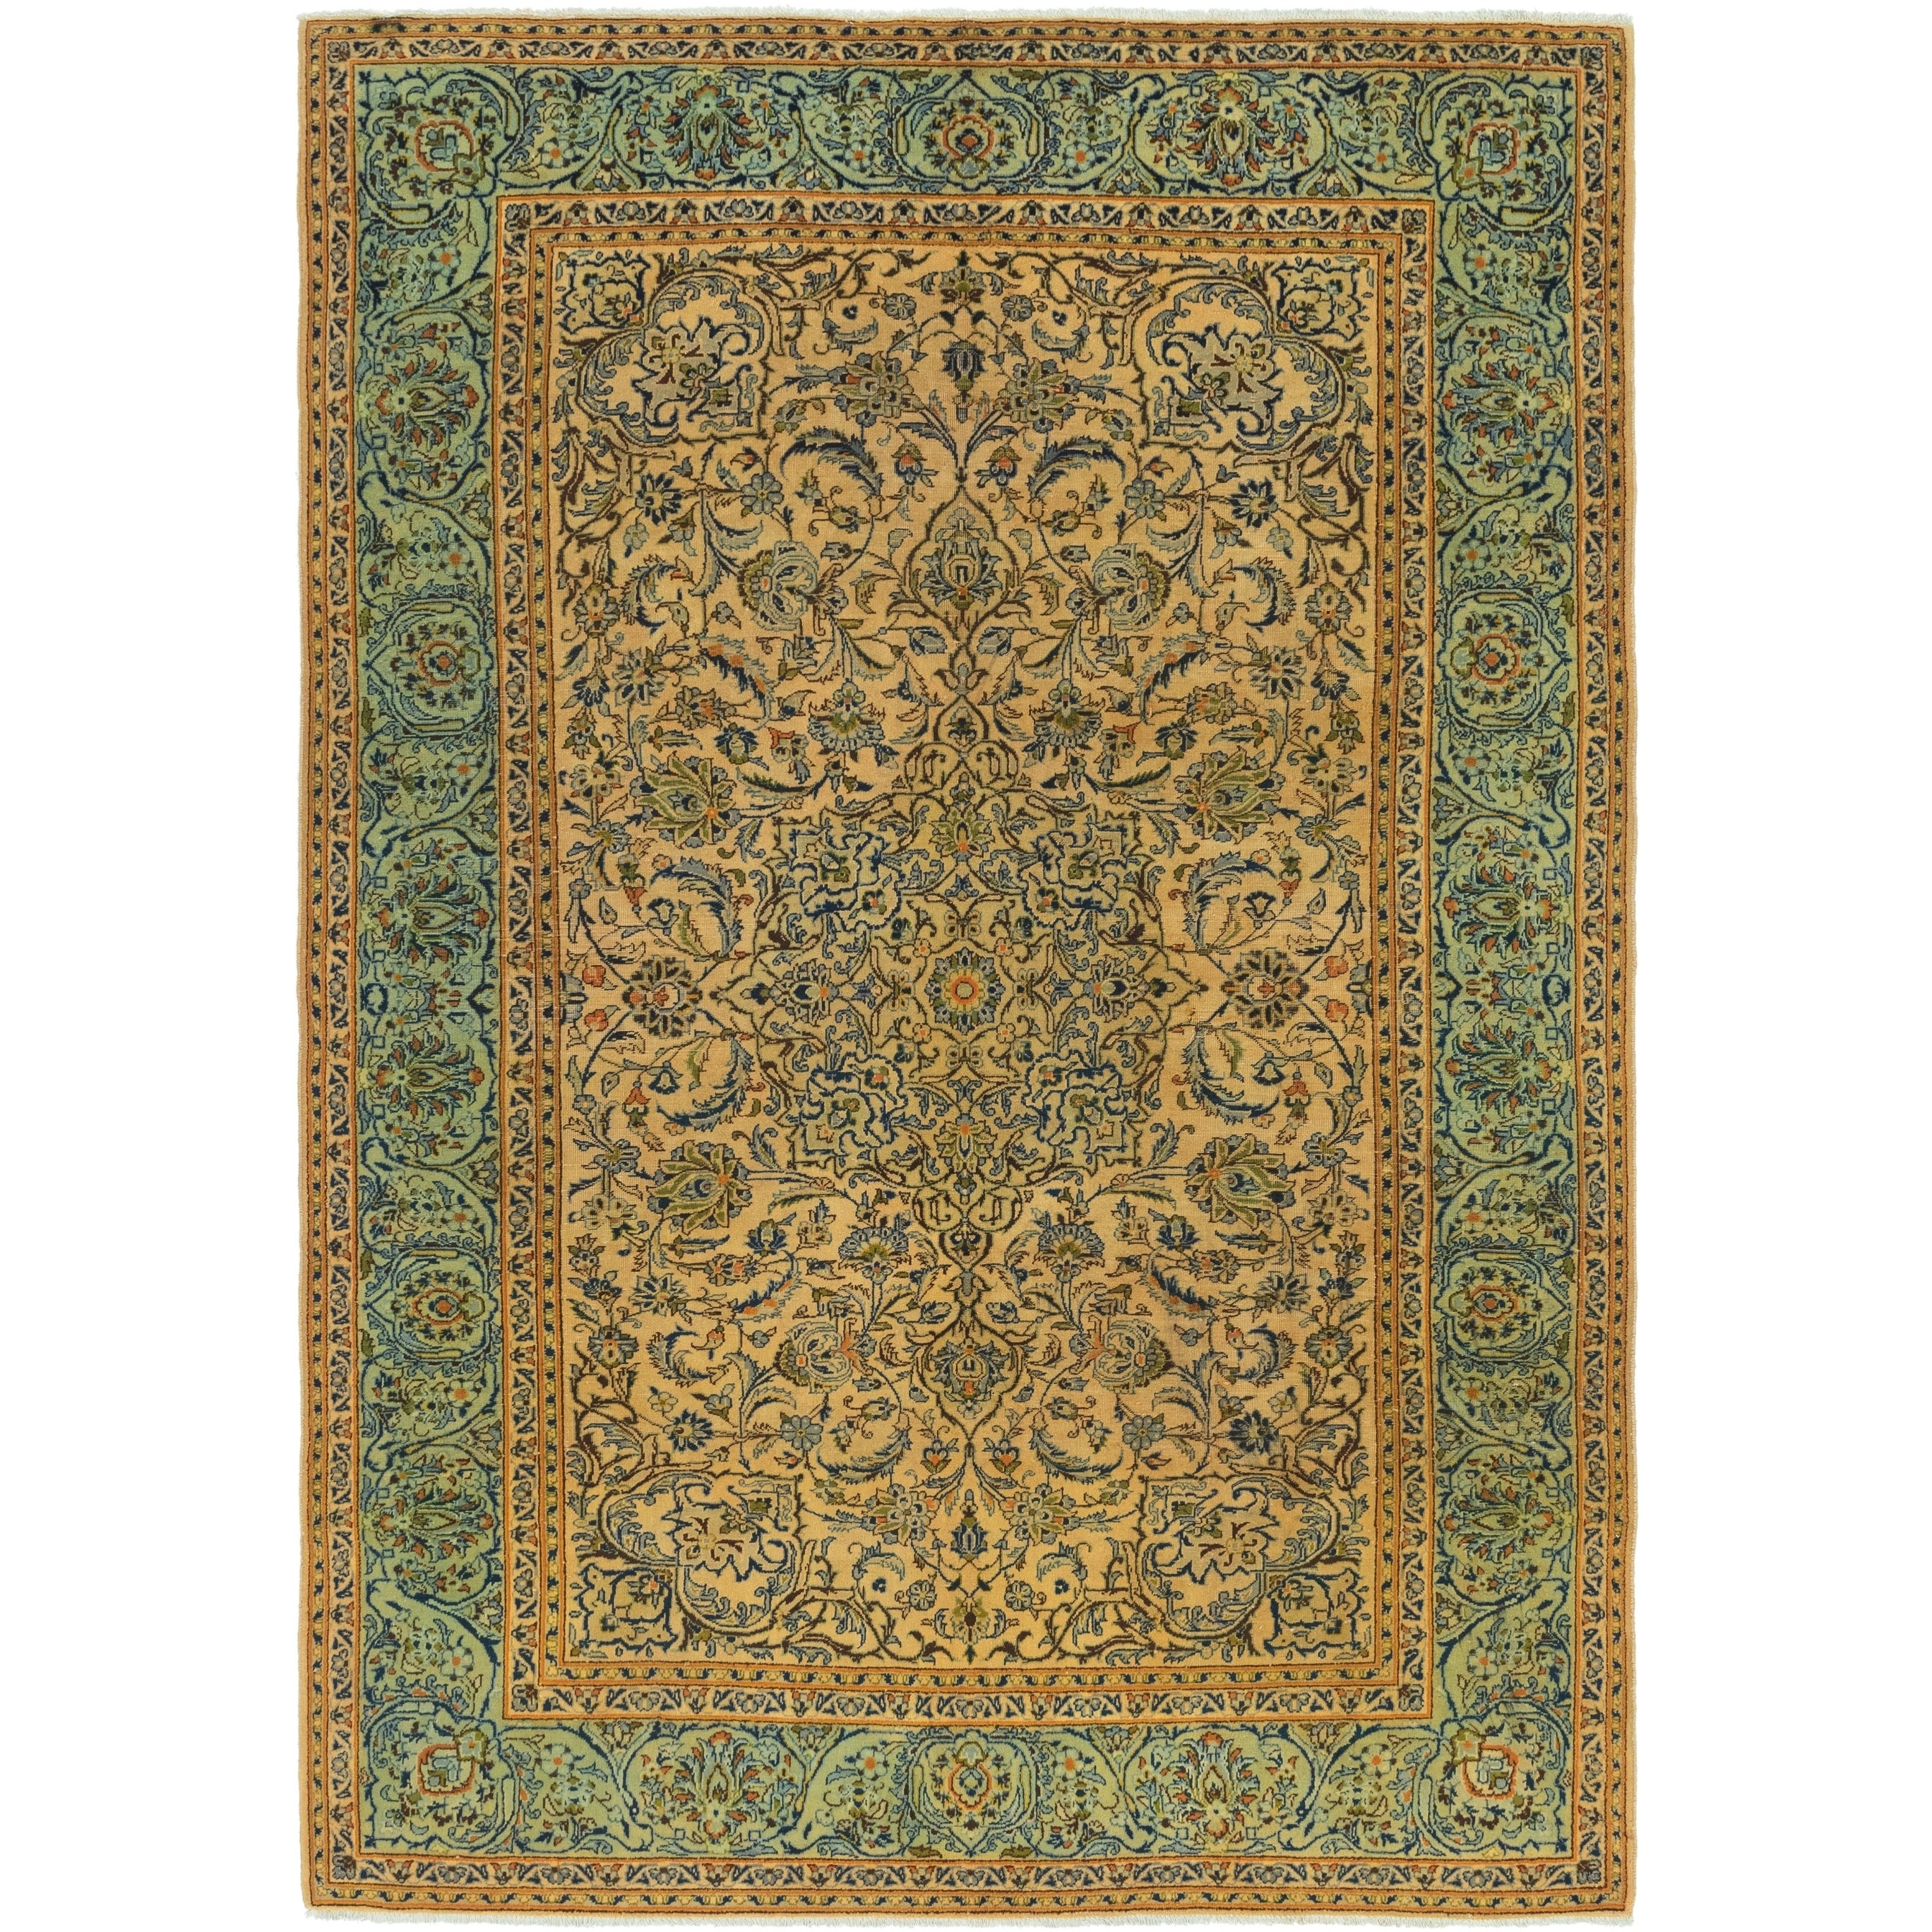 Hand Knotted Kashan Antique Wool Area Rug - 7 9 x 11 5 (Tan - 7 9 x 11 5)